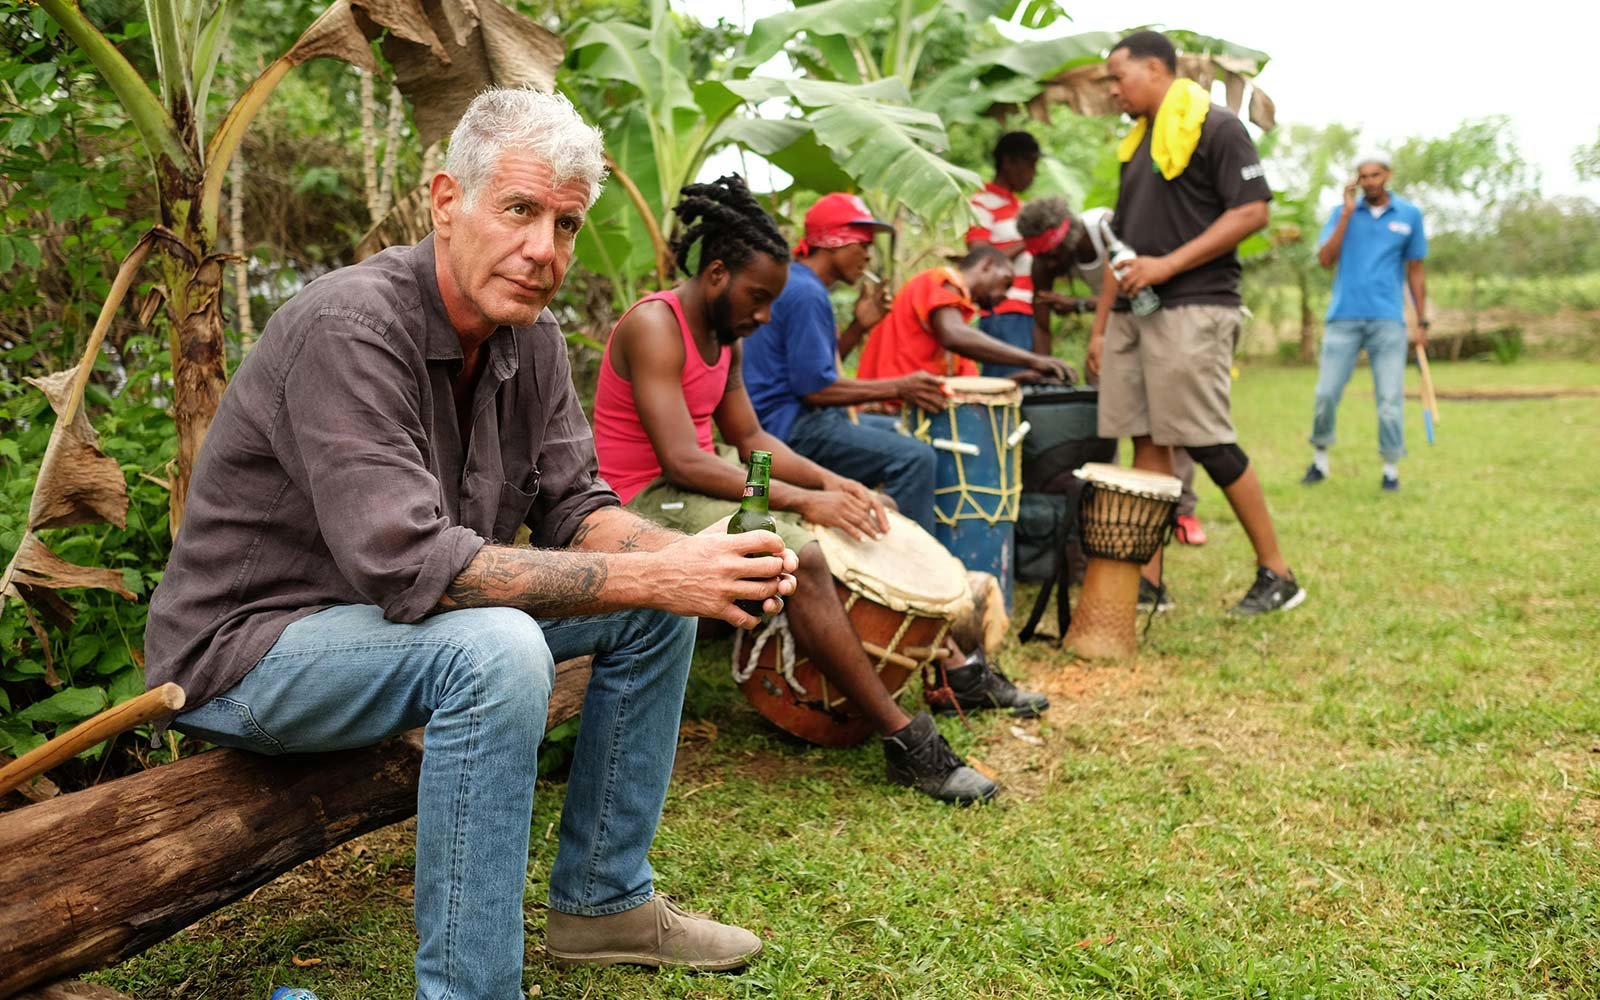 Anthony Bourdain explores in Couva, Trinidad Parts Unknown CNN travel show